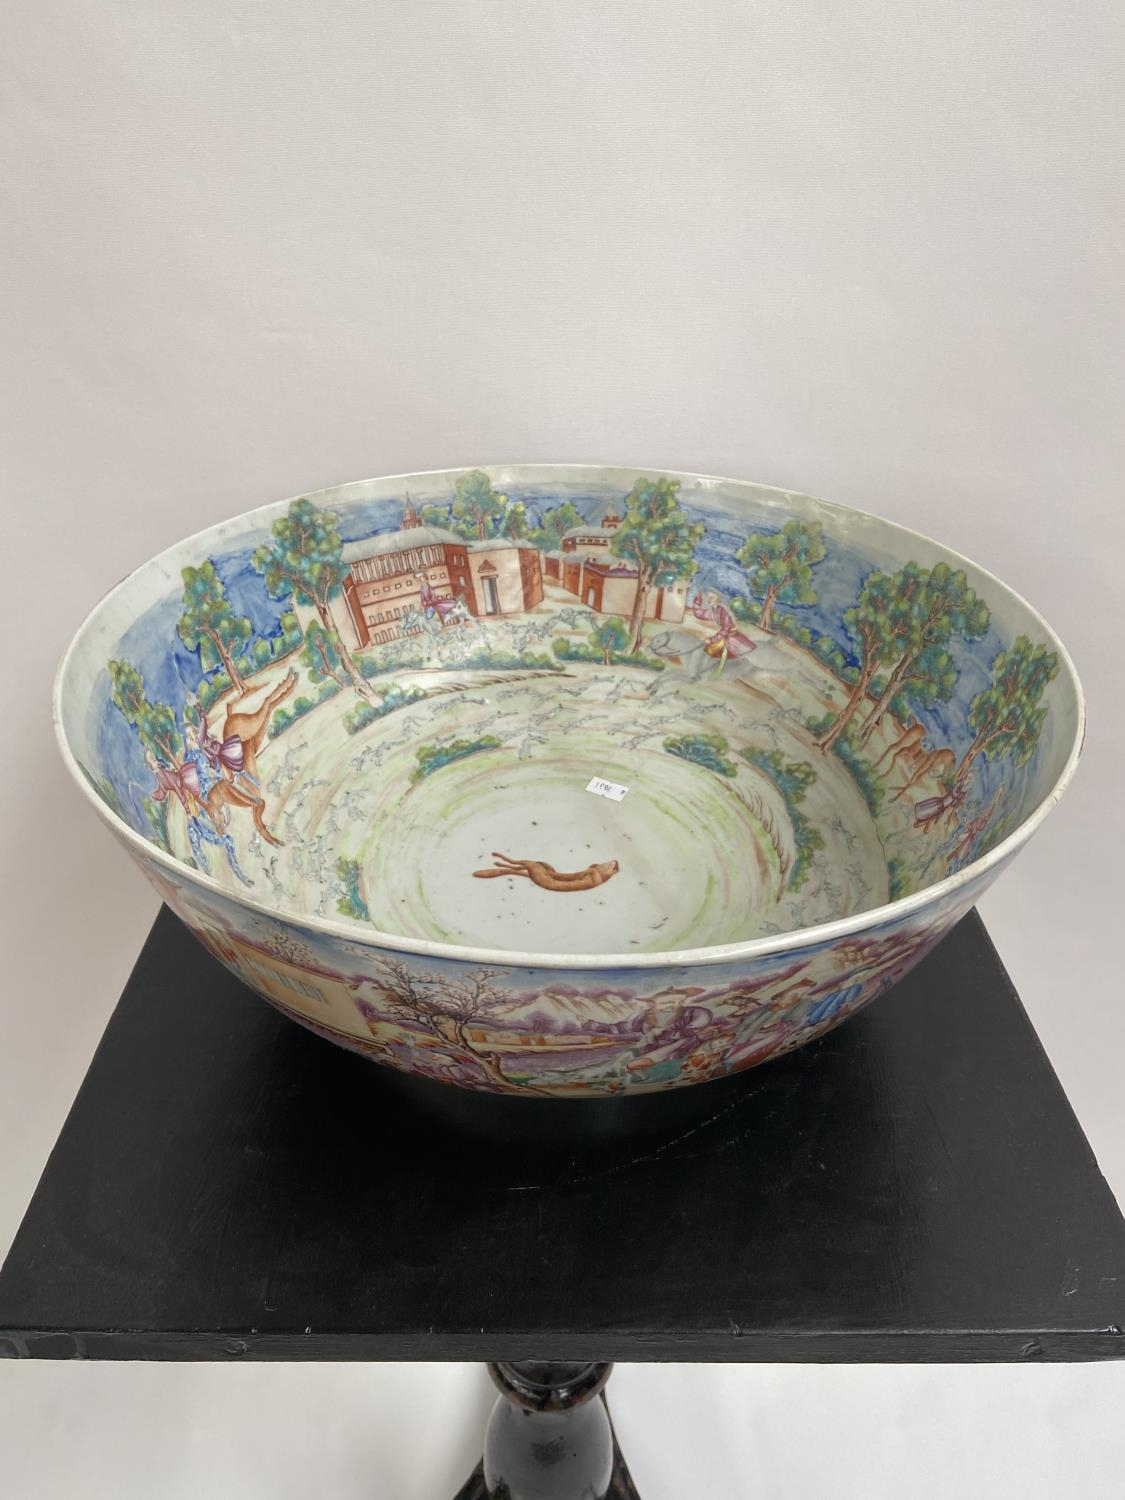 A LARGE 19TH CENTURY CHINESE HAND PAINTED BOWL. EXTERIOR DEPICTS CHINESE HUNTING SCENE PANELS. THE - Image 2 of 39